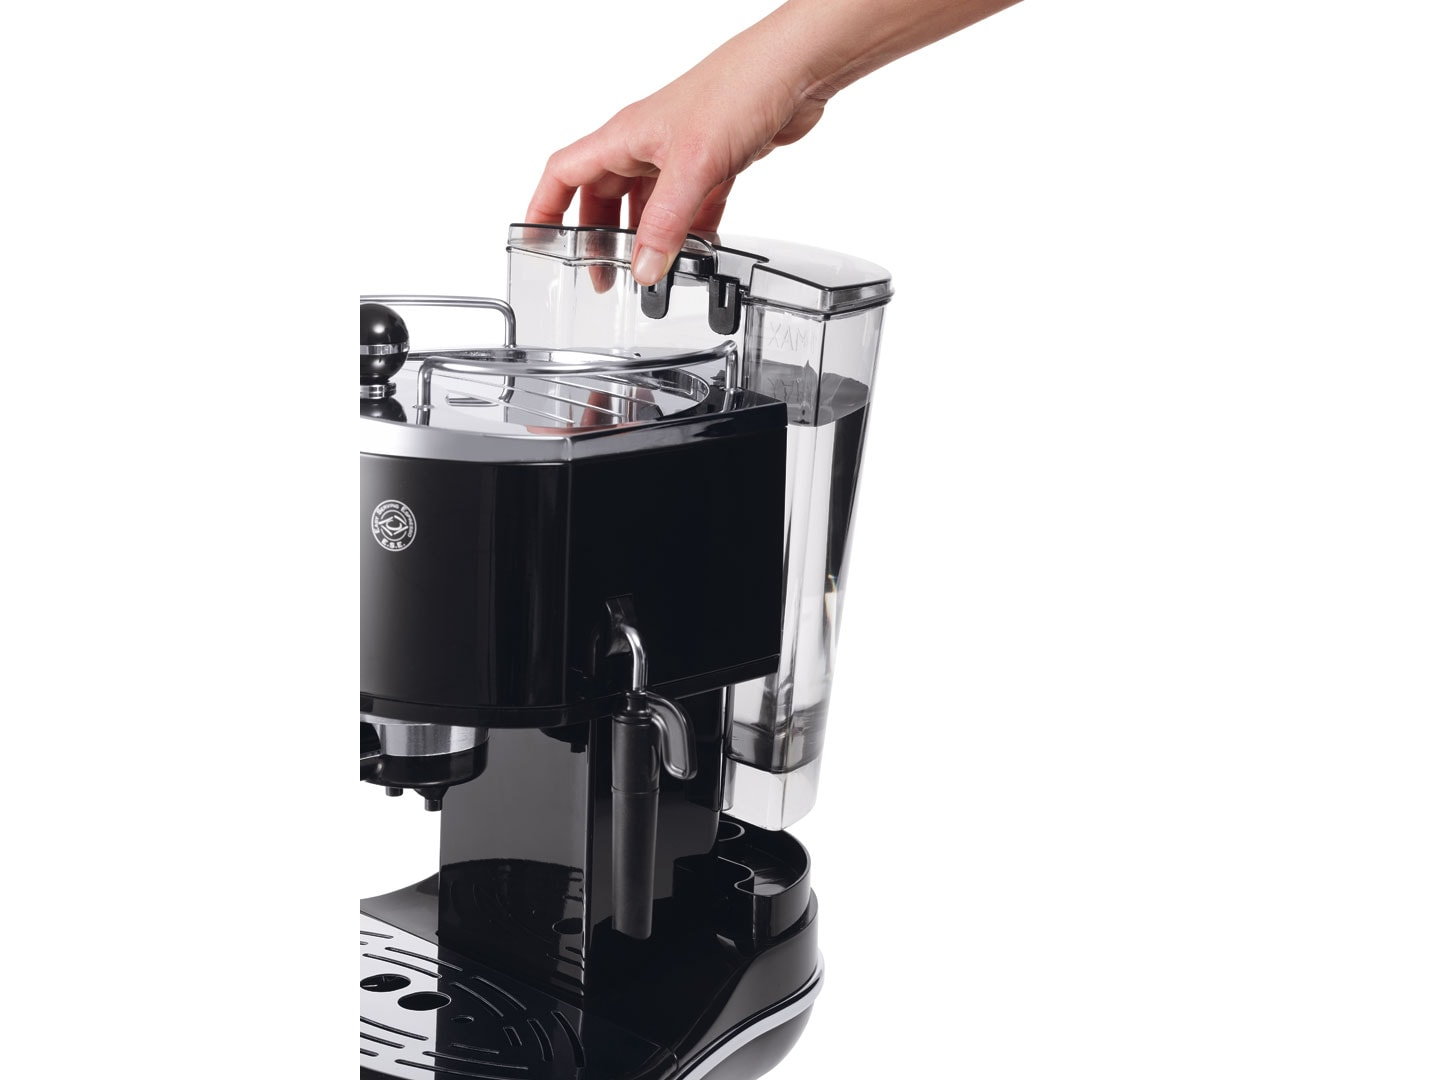 Icona Manual Espresso Machine - Black - ECO310BK